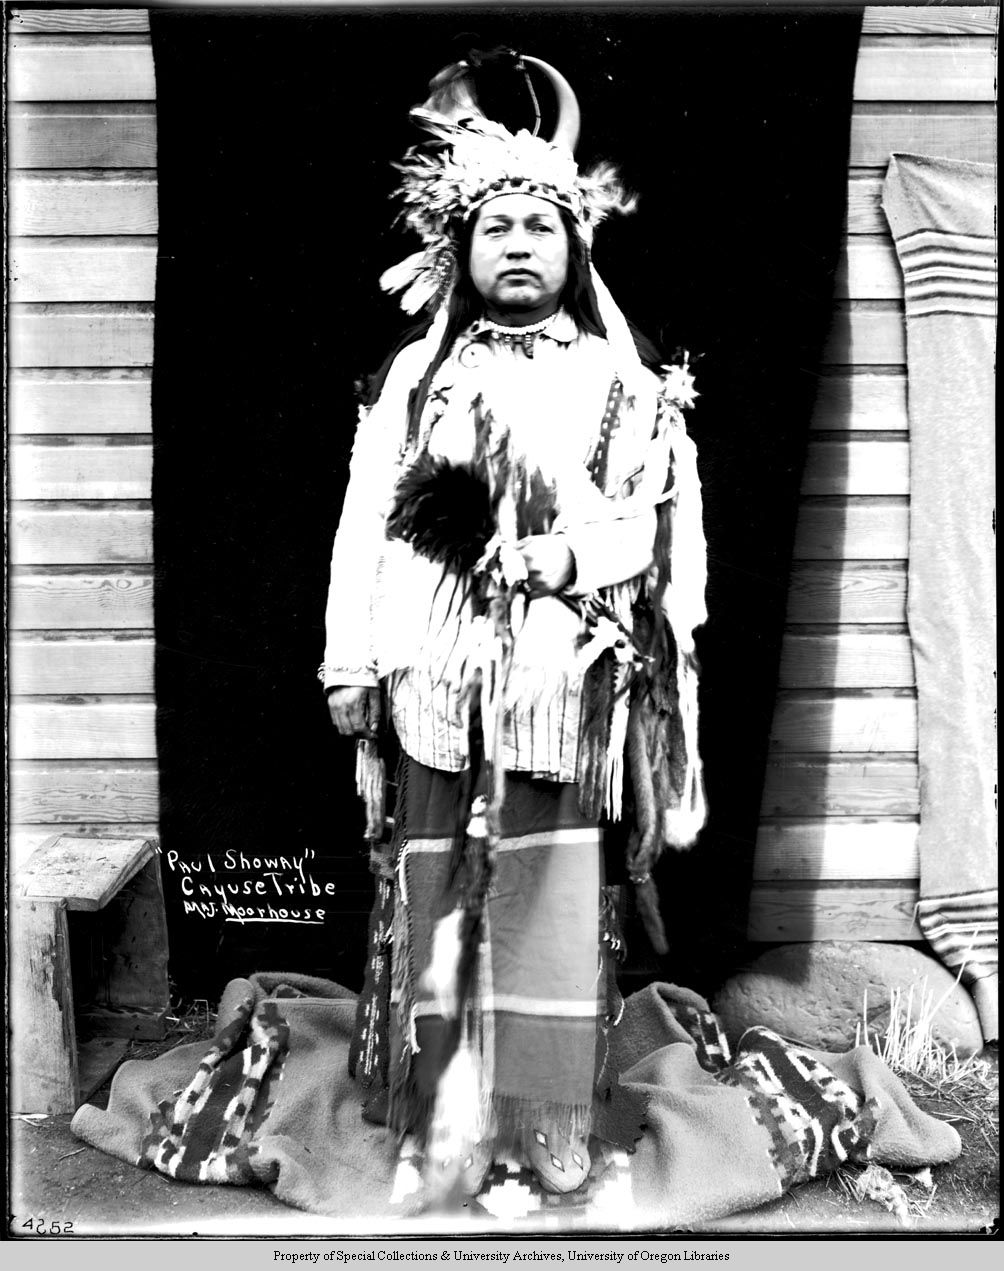 Paul Showay Cayuse  A Native American man standing outside against a black fabric backdrop hung from the side of a building. He is wearing a horned and feathered headdress, a buckskin shirt, geometrically-beaded moccasins, a necklace, and a blanket wrapped around his legs. He is holding an unidentified object in his left hand with hair or fur on the end of it.  Photo by Major Lee Moorhouse